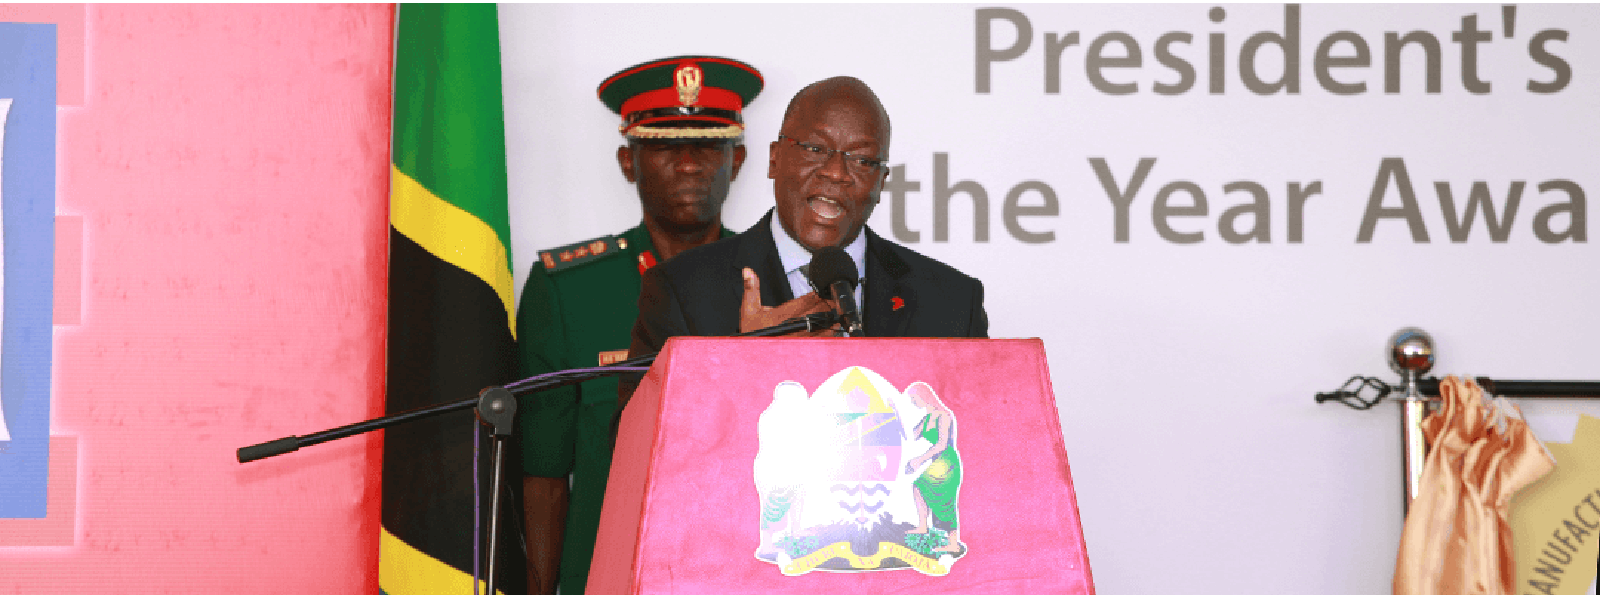 His Excellency Dr. John Pombe Magufuli, President of United Republic of Tanzania and Patron of CTI